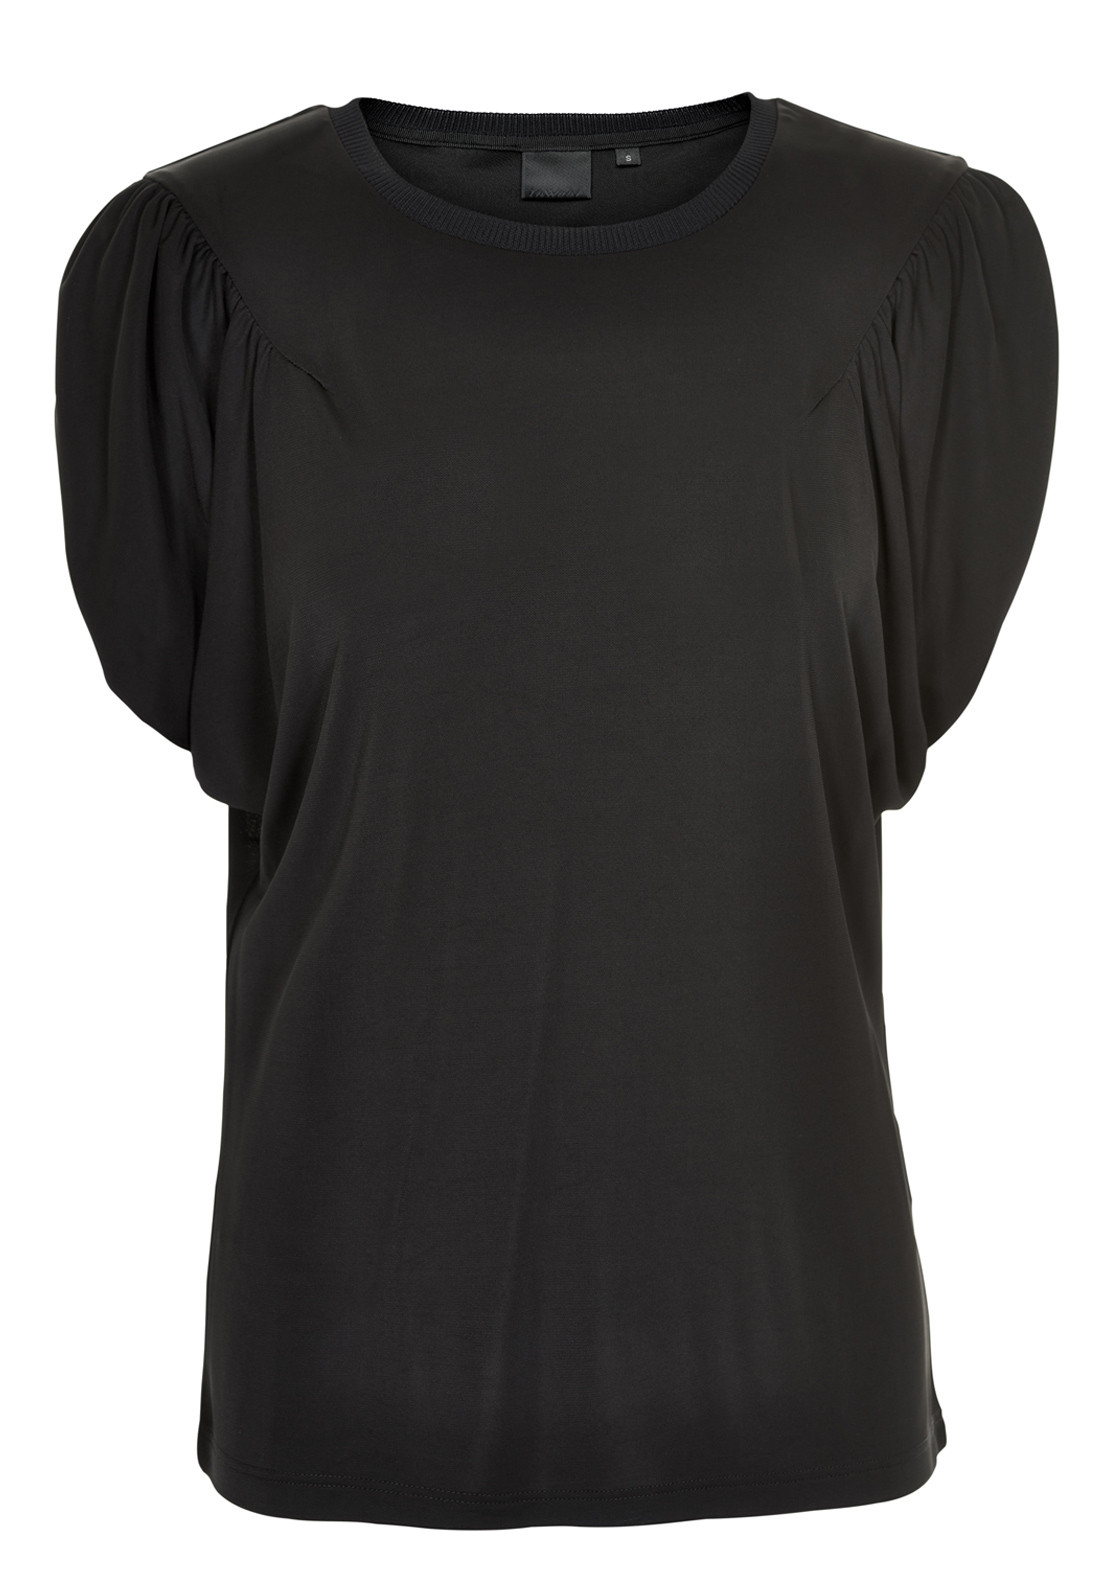 Inwear Tinie Lux Short Batwing Sleeve Jersey Top, Black